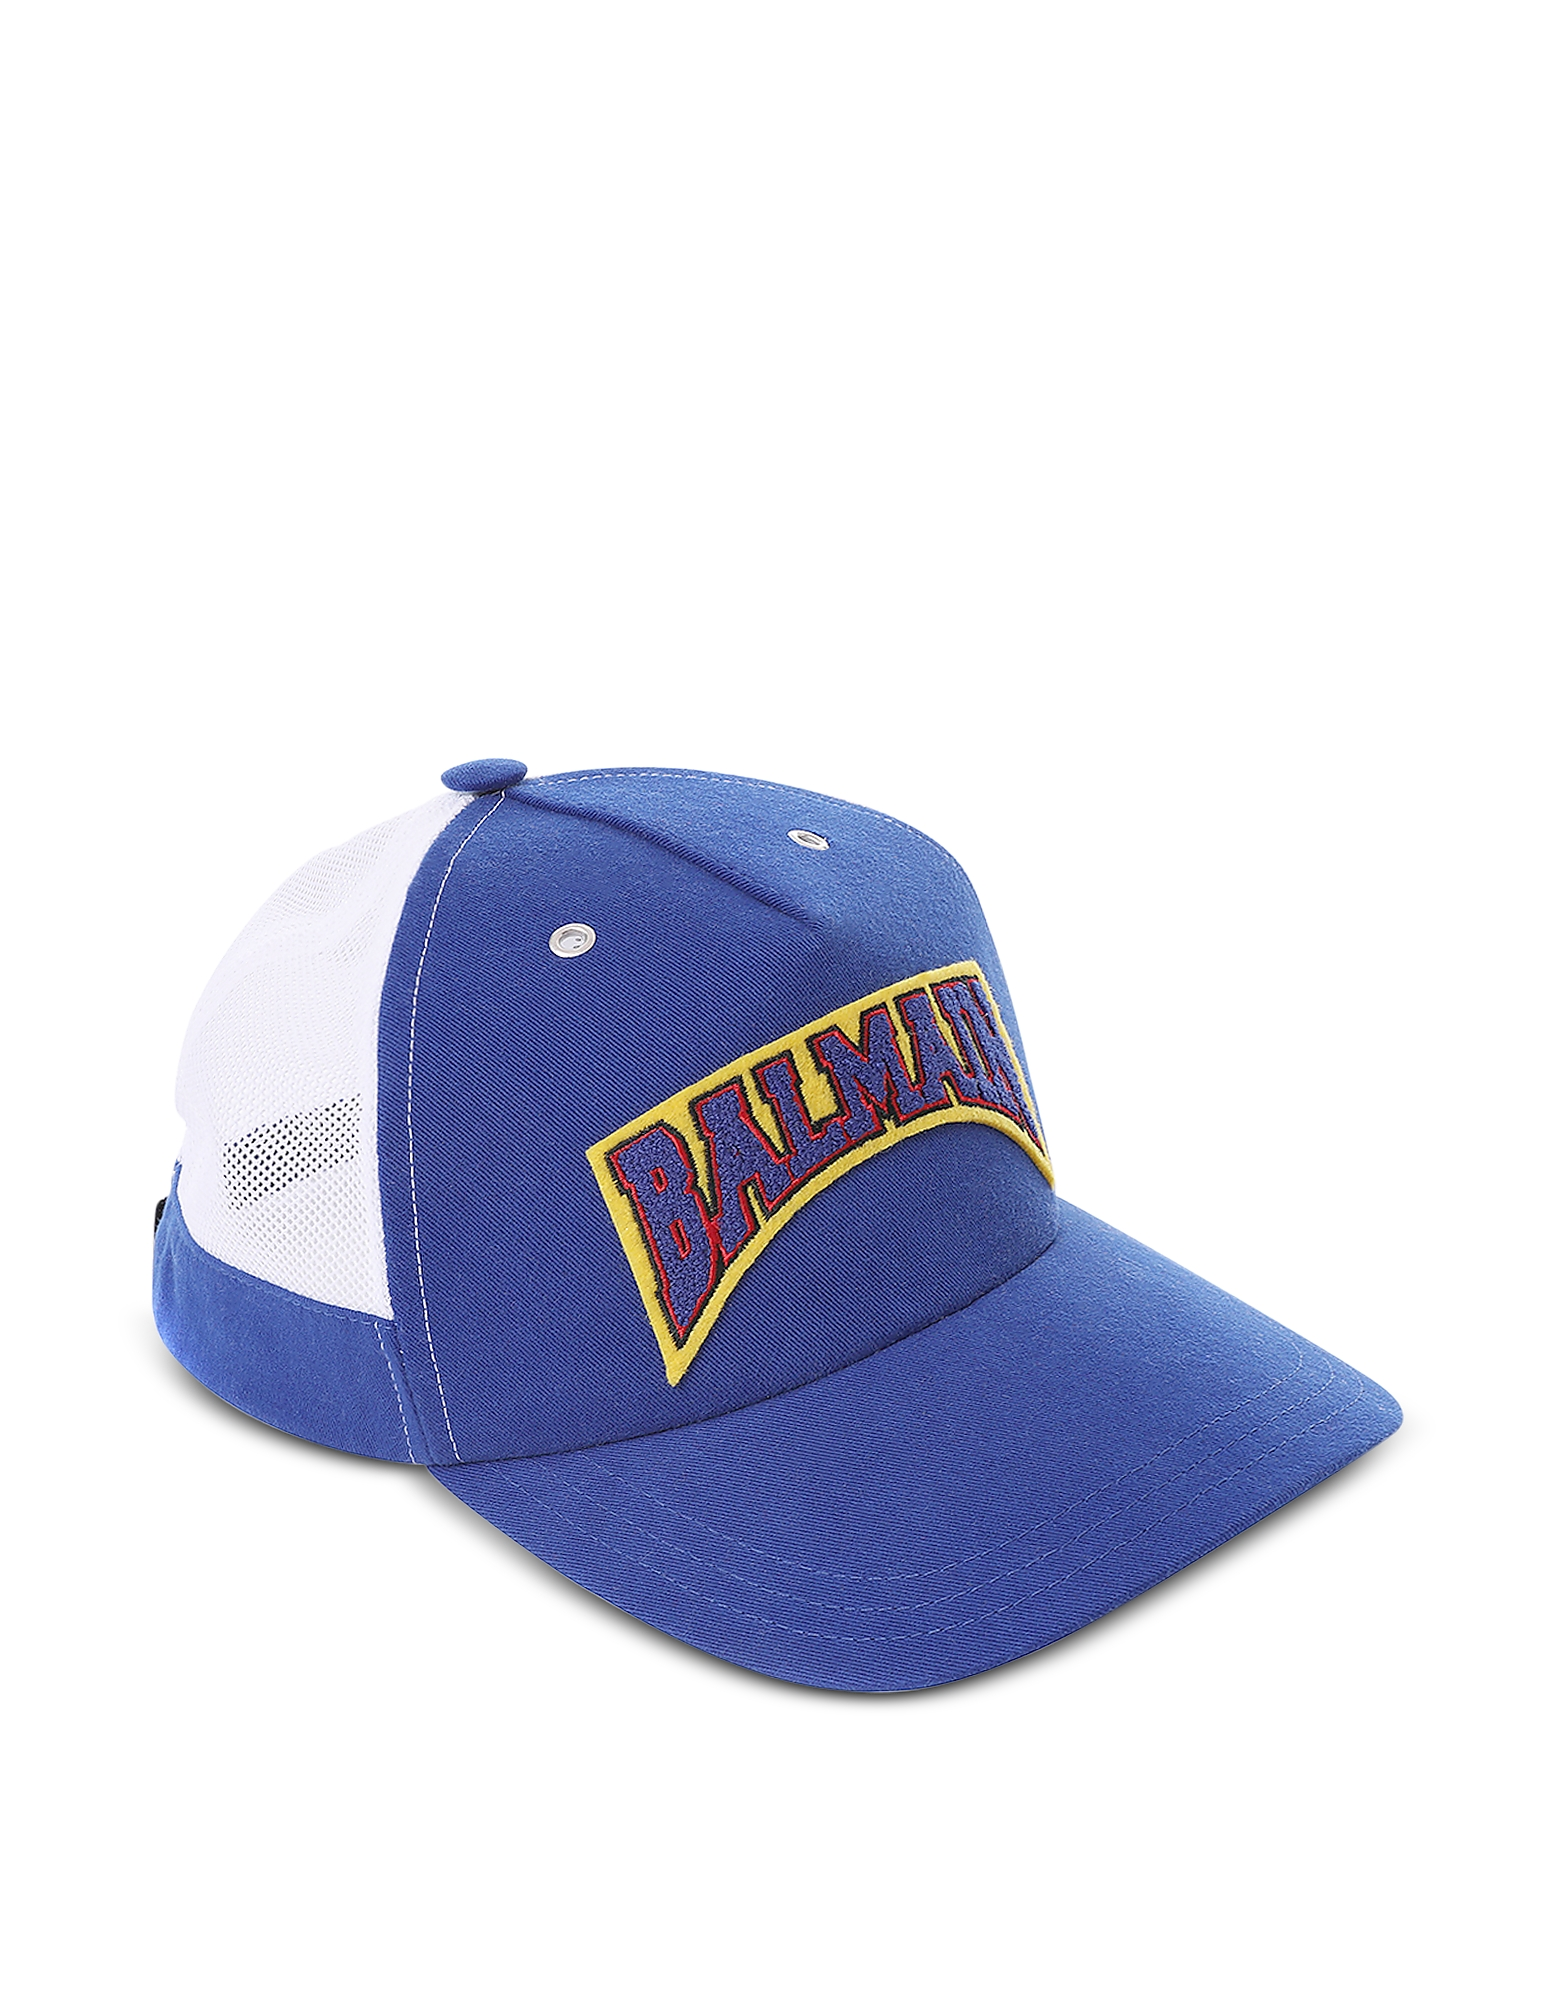 Two Tone Signature Baseball Cap